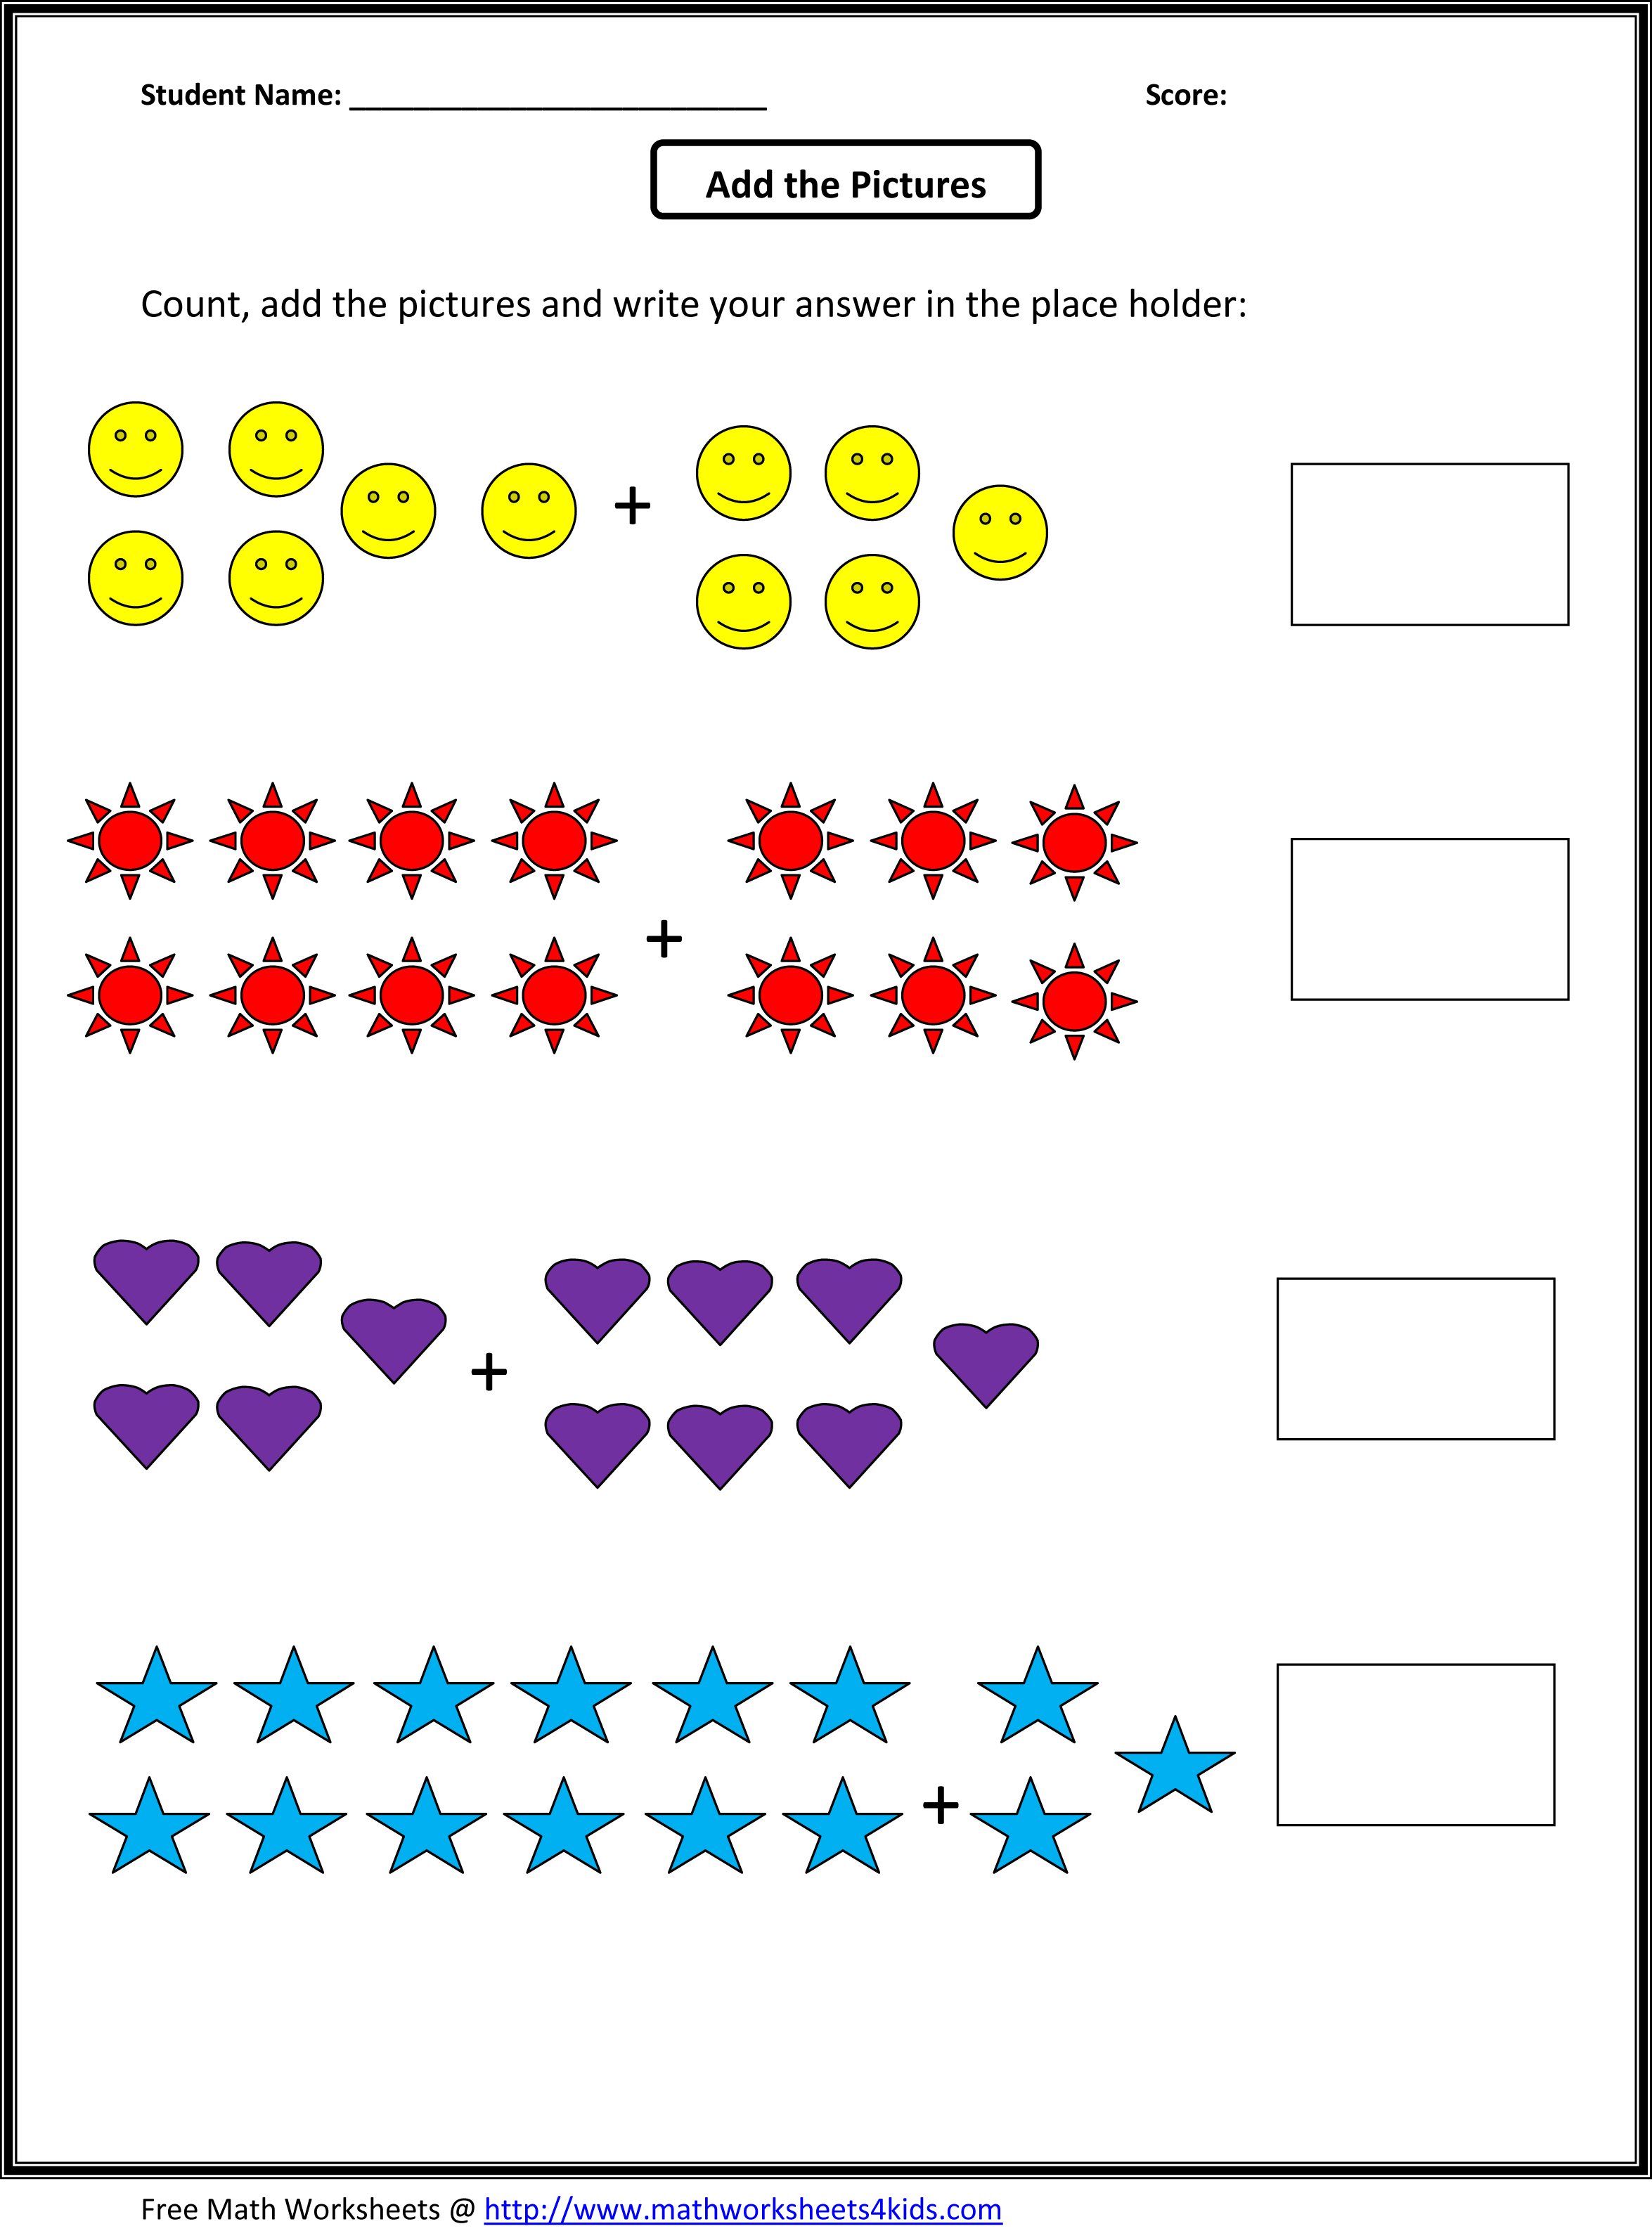 Weirdmailus  Sweet Grade  Maths Worksheet  Reocurent With Luxury Math Worksheets For St Grade Free  Reocurent With Beautiful Division Worksheets Th Grade Also Number Writing Worksheets In Addition The Human Digestive System Worksheet And Economics Worksheets As Well As Solubility Curve Practice Problems Worksheet  Answer Key Additionally Th Grade Math Worksheet From Reocurentcom With Weirdmailus  Luxury Grade  Maths Worksheet  Reocurent With Beautiful Math Worksheets For St Grade Free  Reocurent And Sweet Division Worksheets Th Grade Also Number Writing Worksheets In Addition The Human Digestive System Worksheet From Reocurentcom